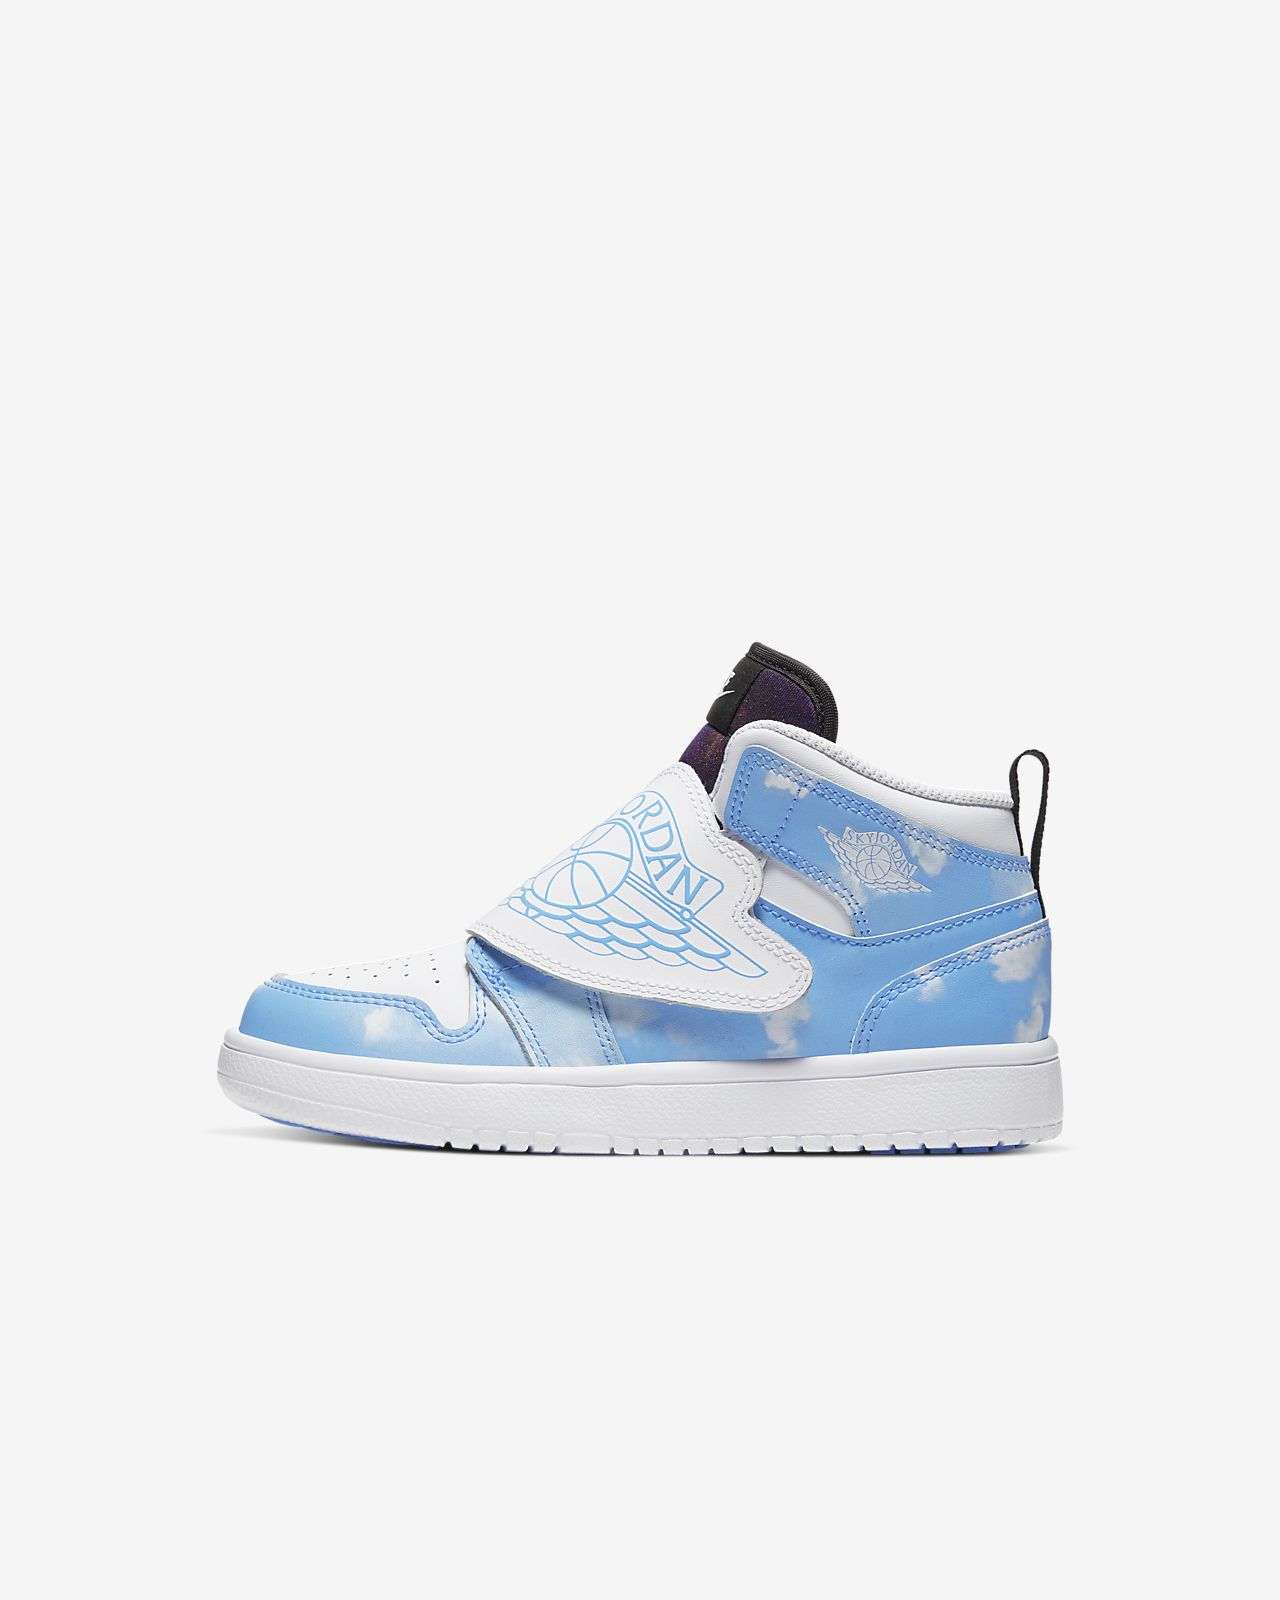 Sky Jordan 1 Fearless Little Kids' Shoe